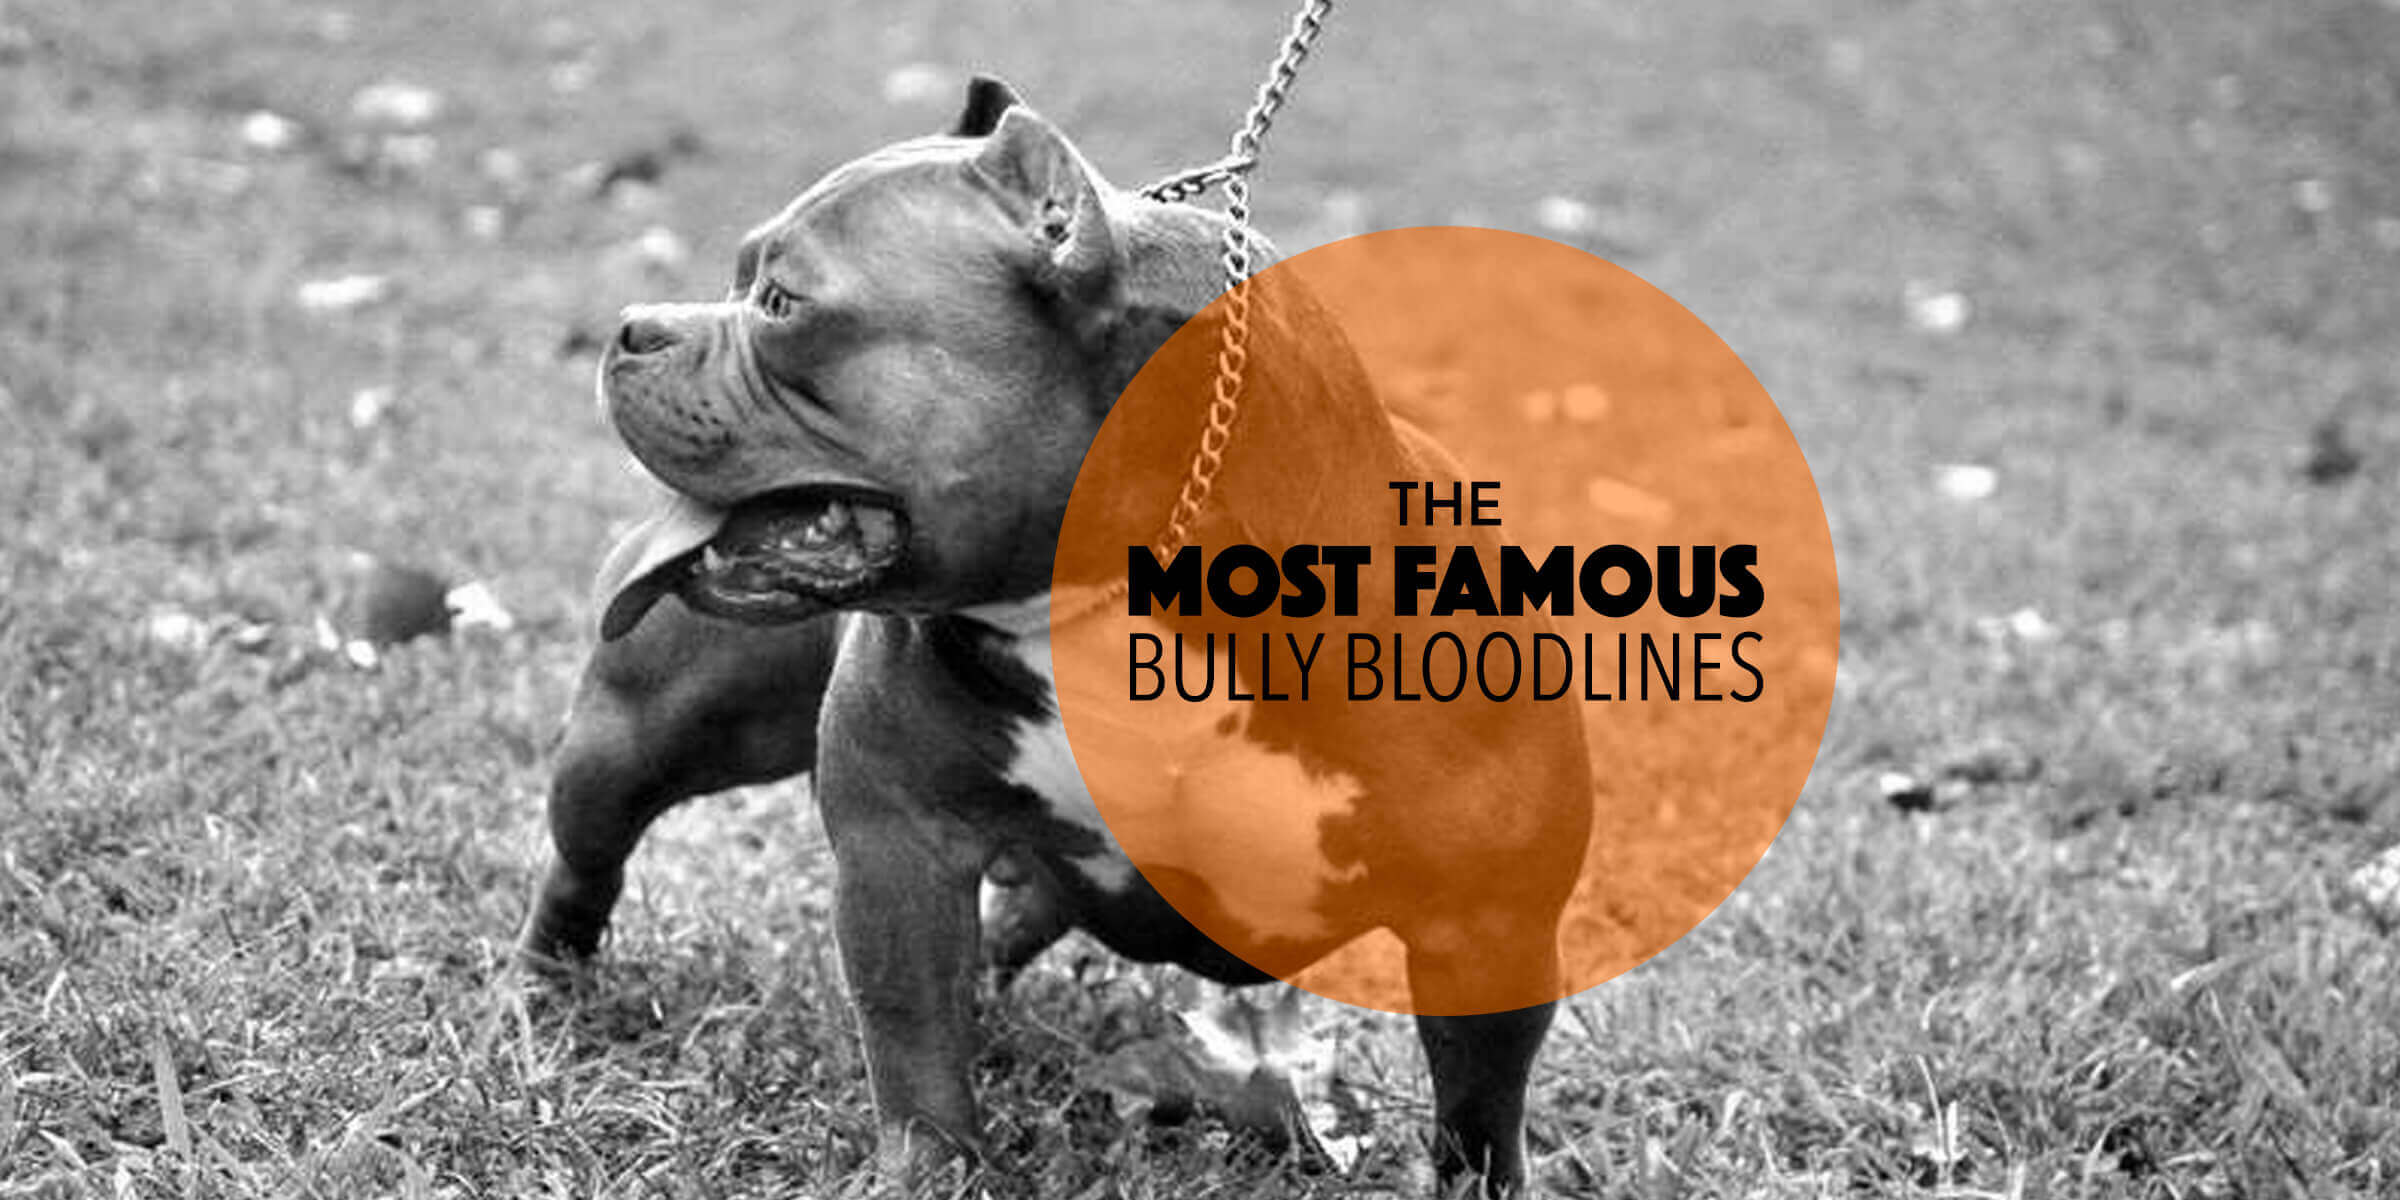 MOST FAMOUS BULLY BLOODLINES